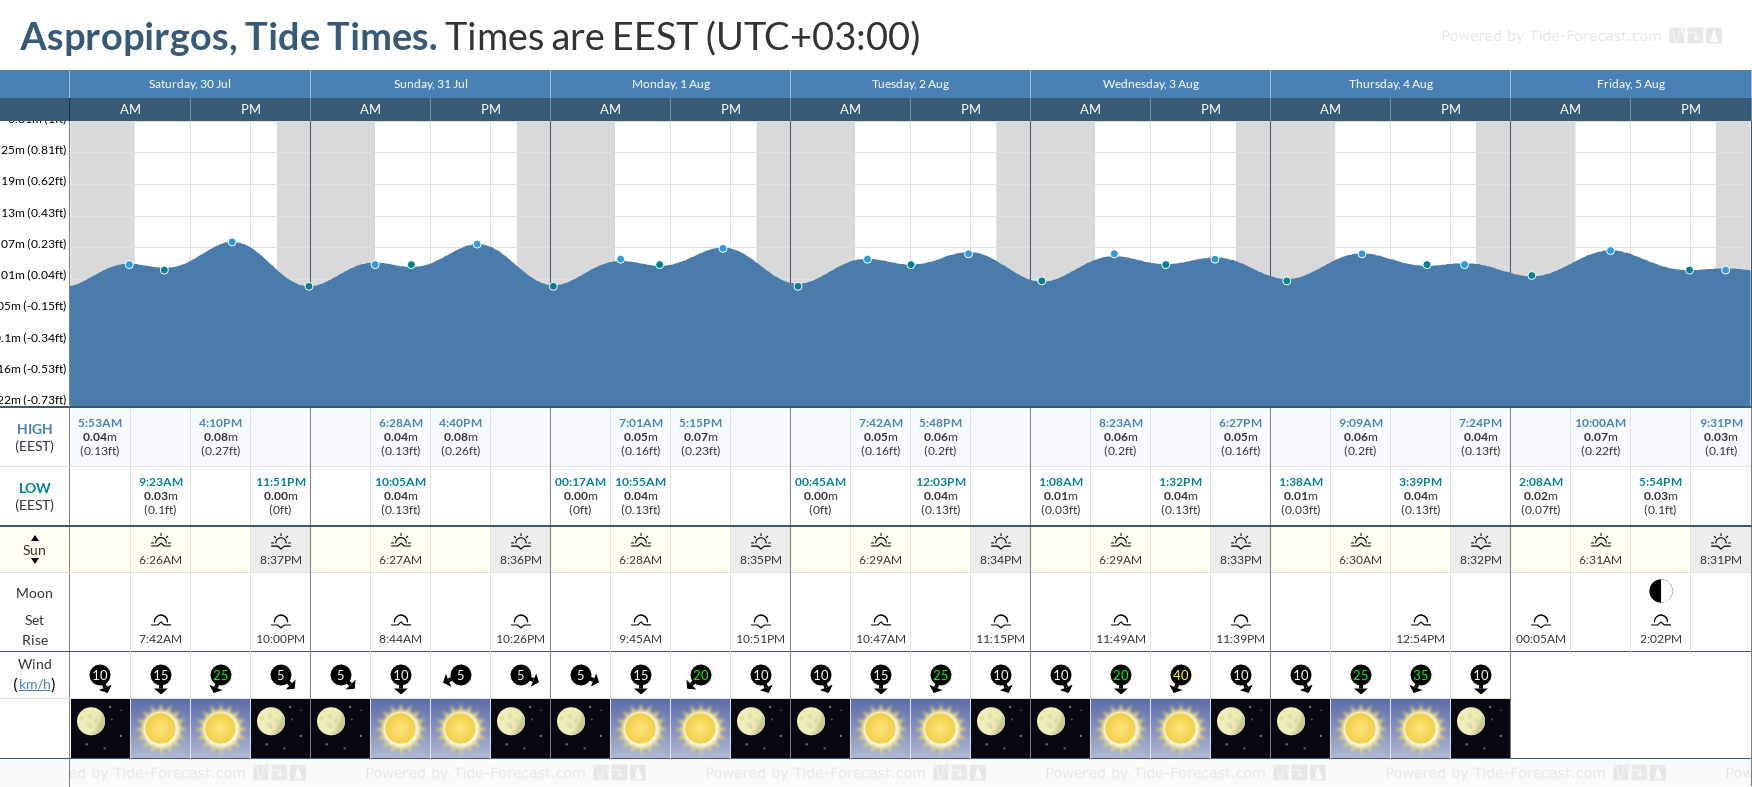 Aspropirgos Tide Chart including high and low tide tide times for the next 7 days